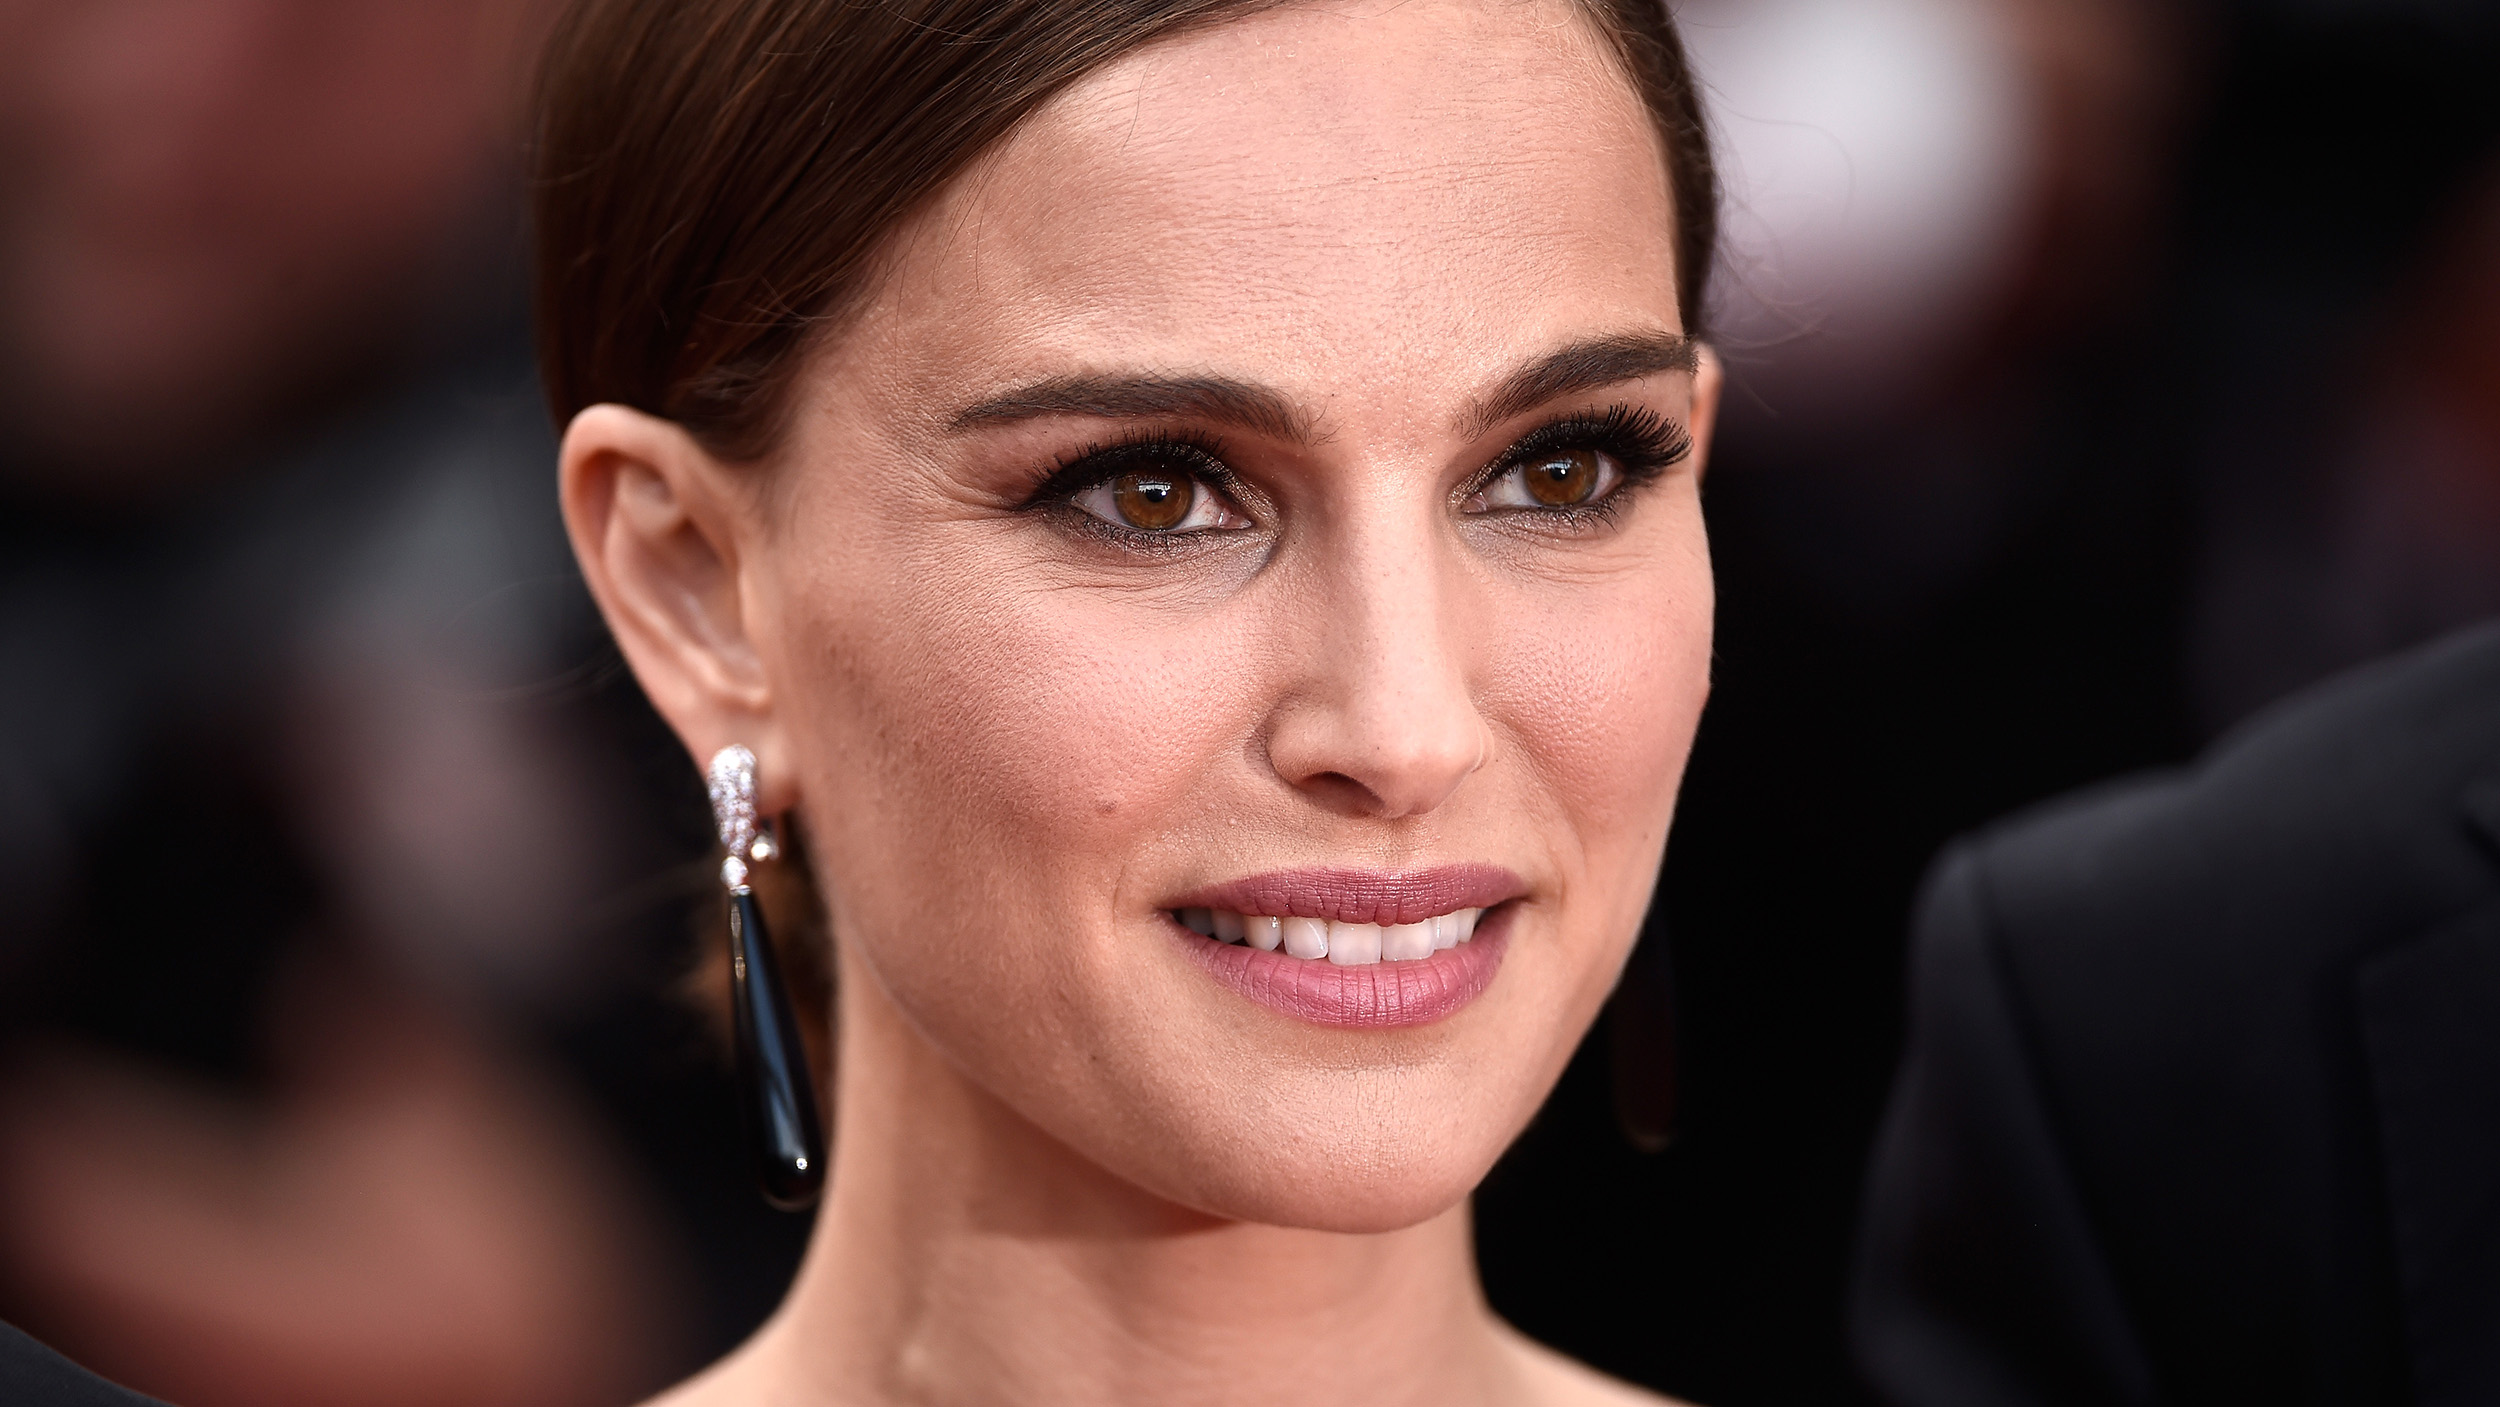 Natalie Portman makes debut as Jackie Kennedy in first biopic photo ... Natalie Portman